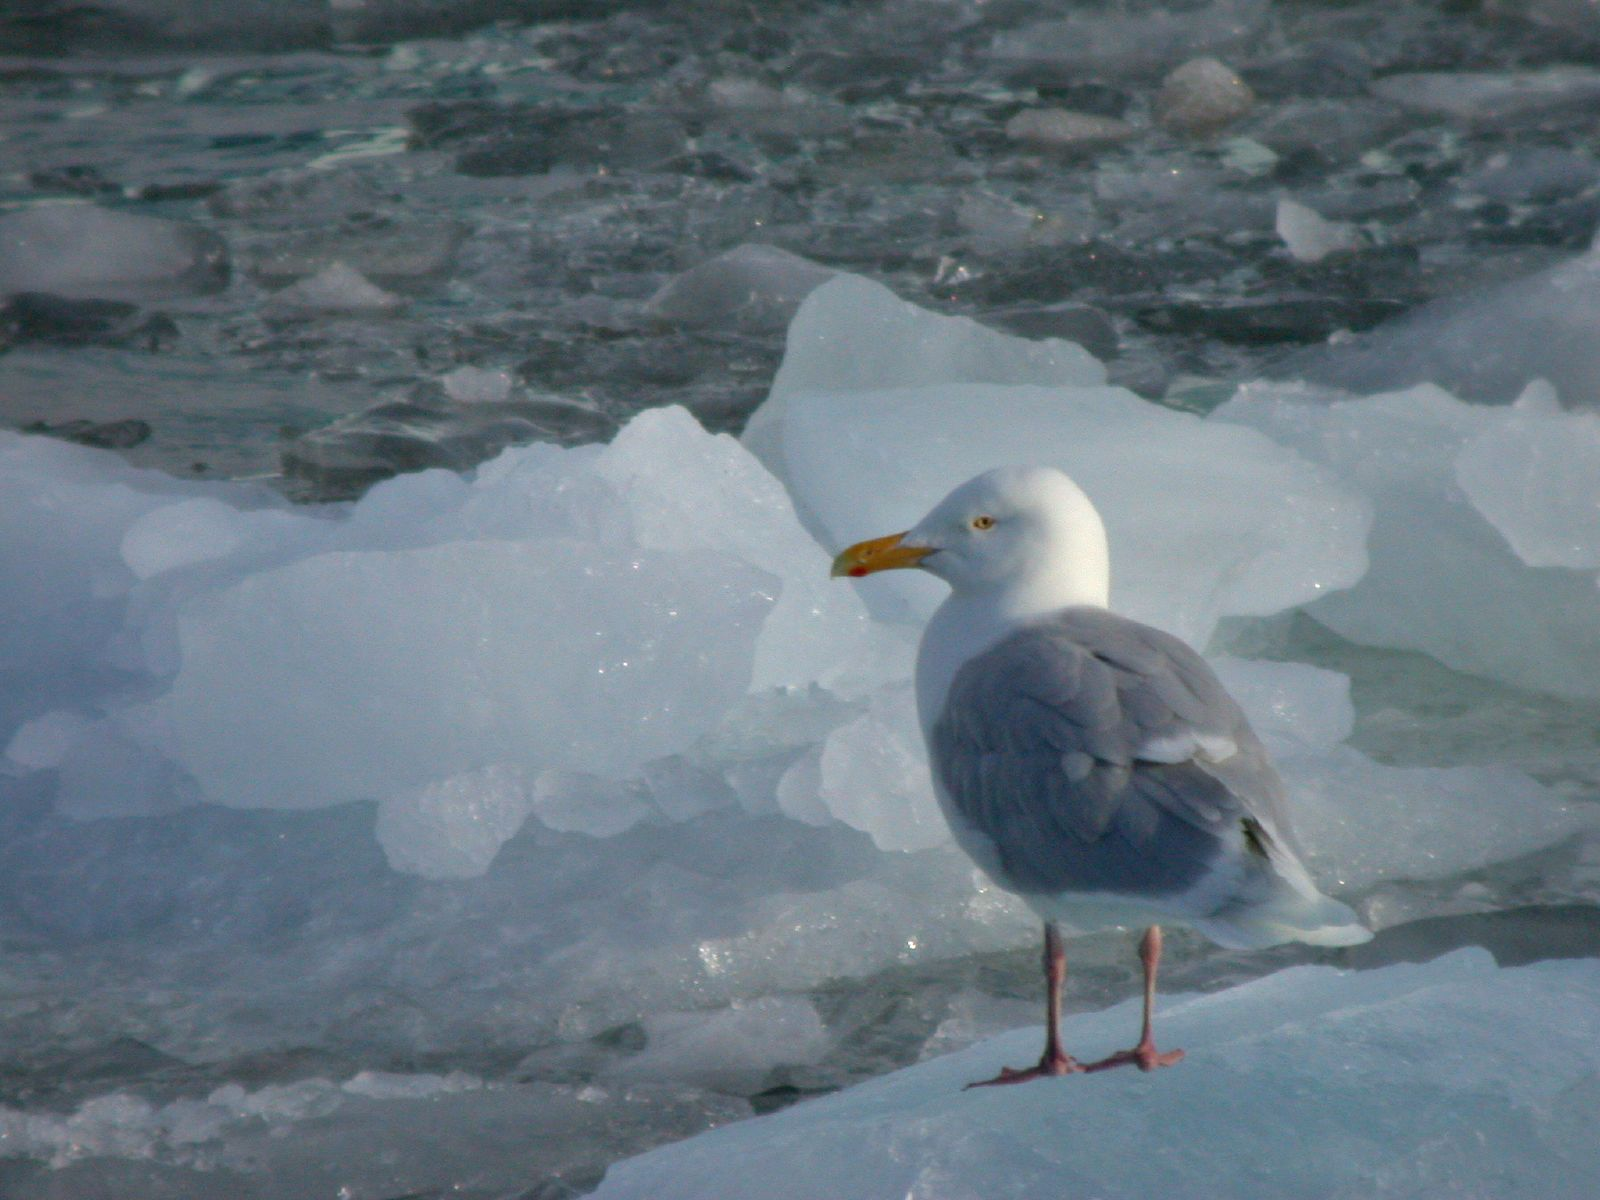 http://upload.wikimedia.org/wikipedia/commons/7/7a/Glacous_Gull_on_ice.jpg